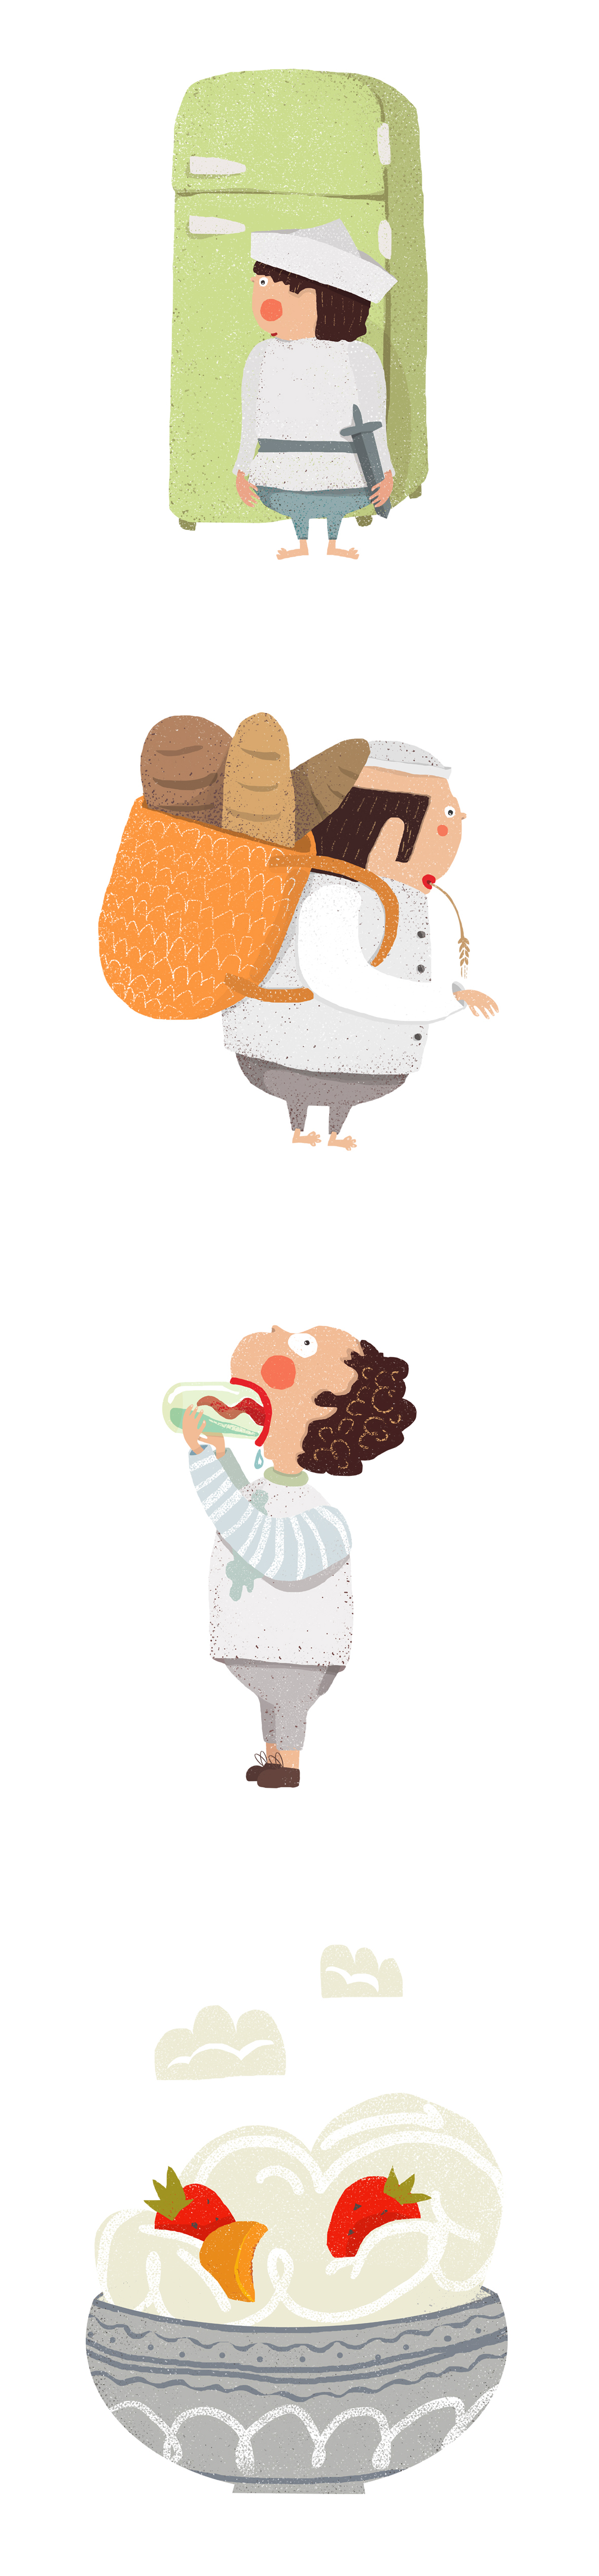 SERIES OF ILLUSTRATIONS - DANONE